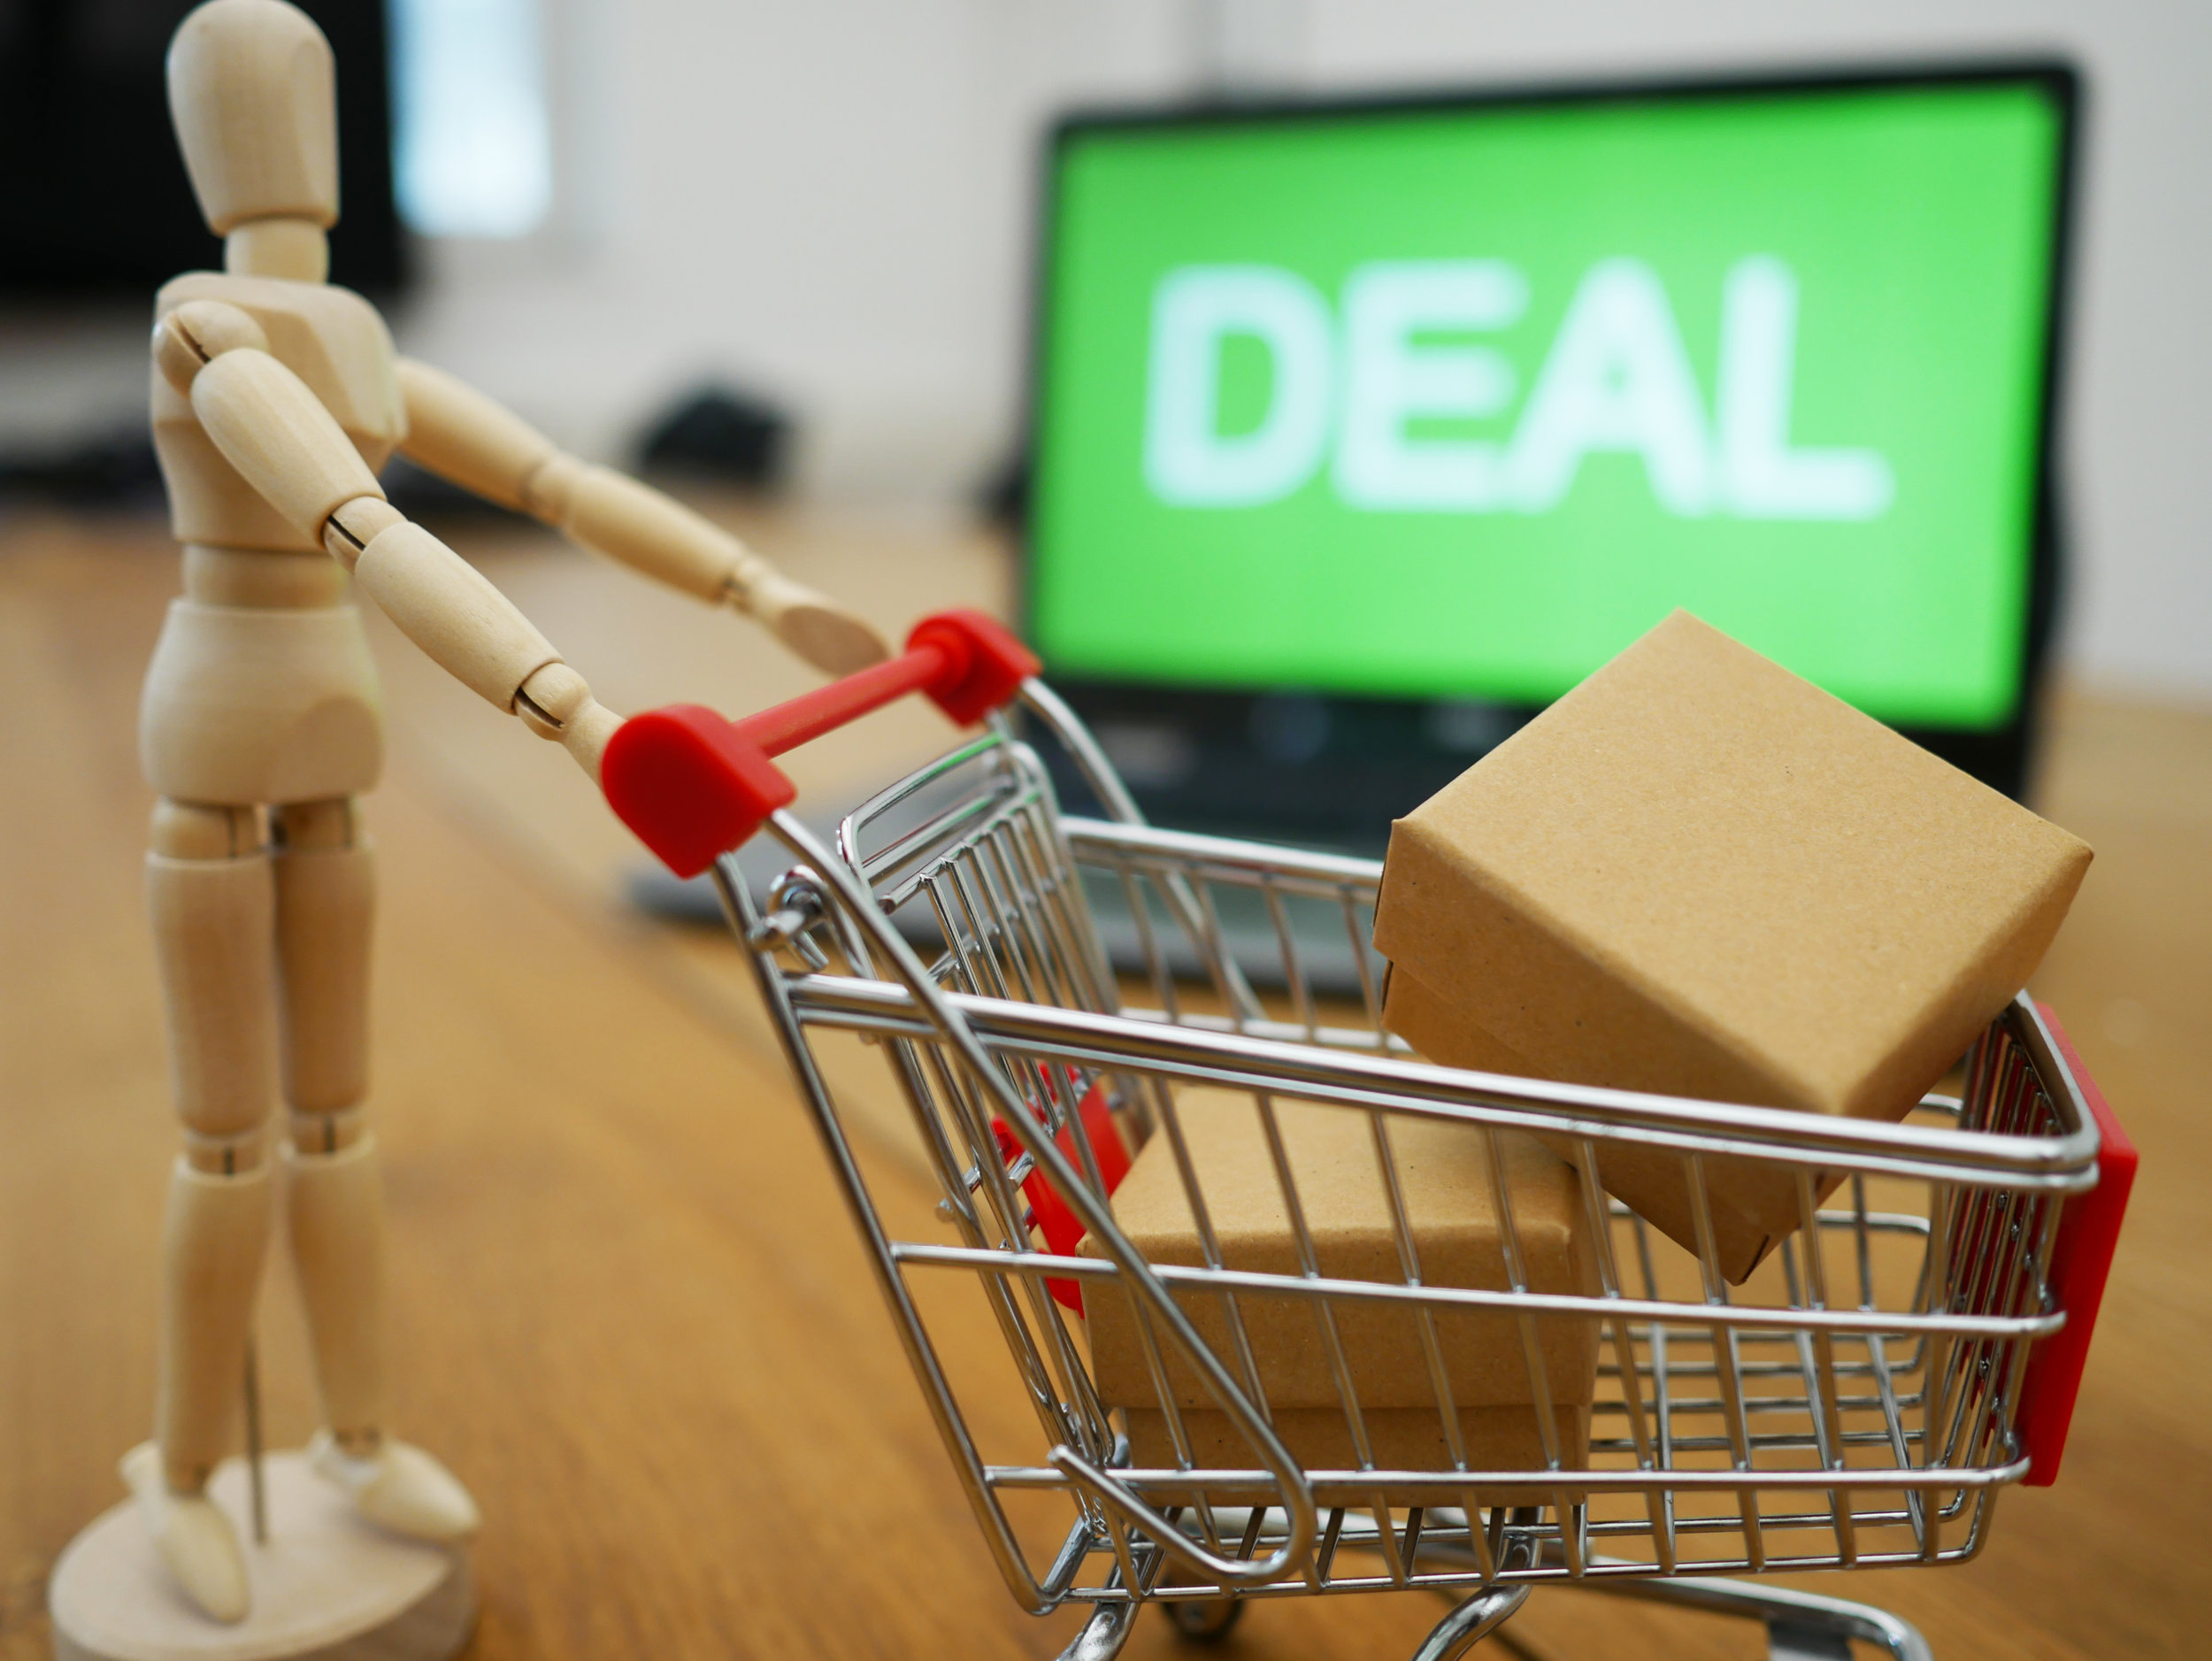 How to Buy a Digital Business? - E-Commerce Website for Sale